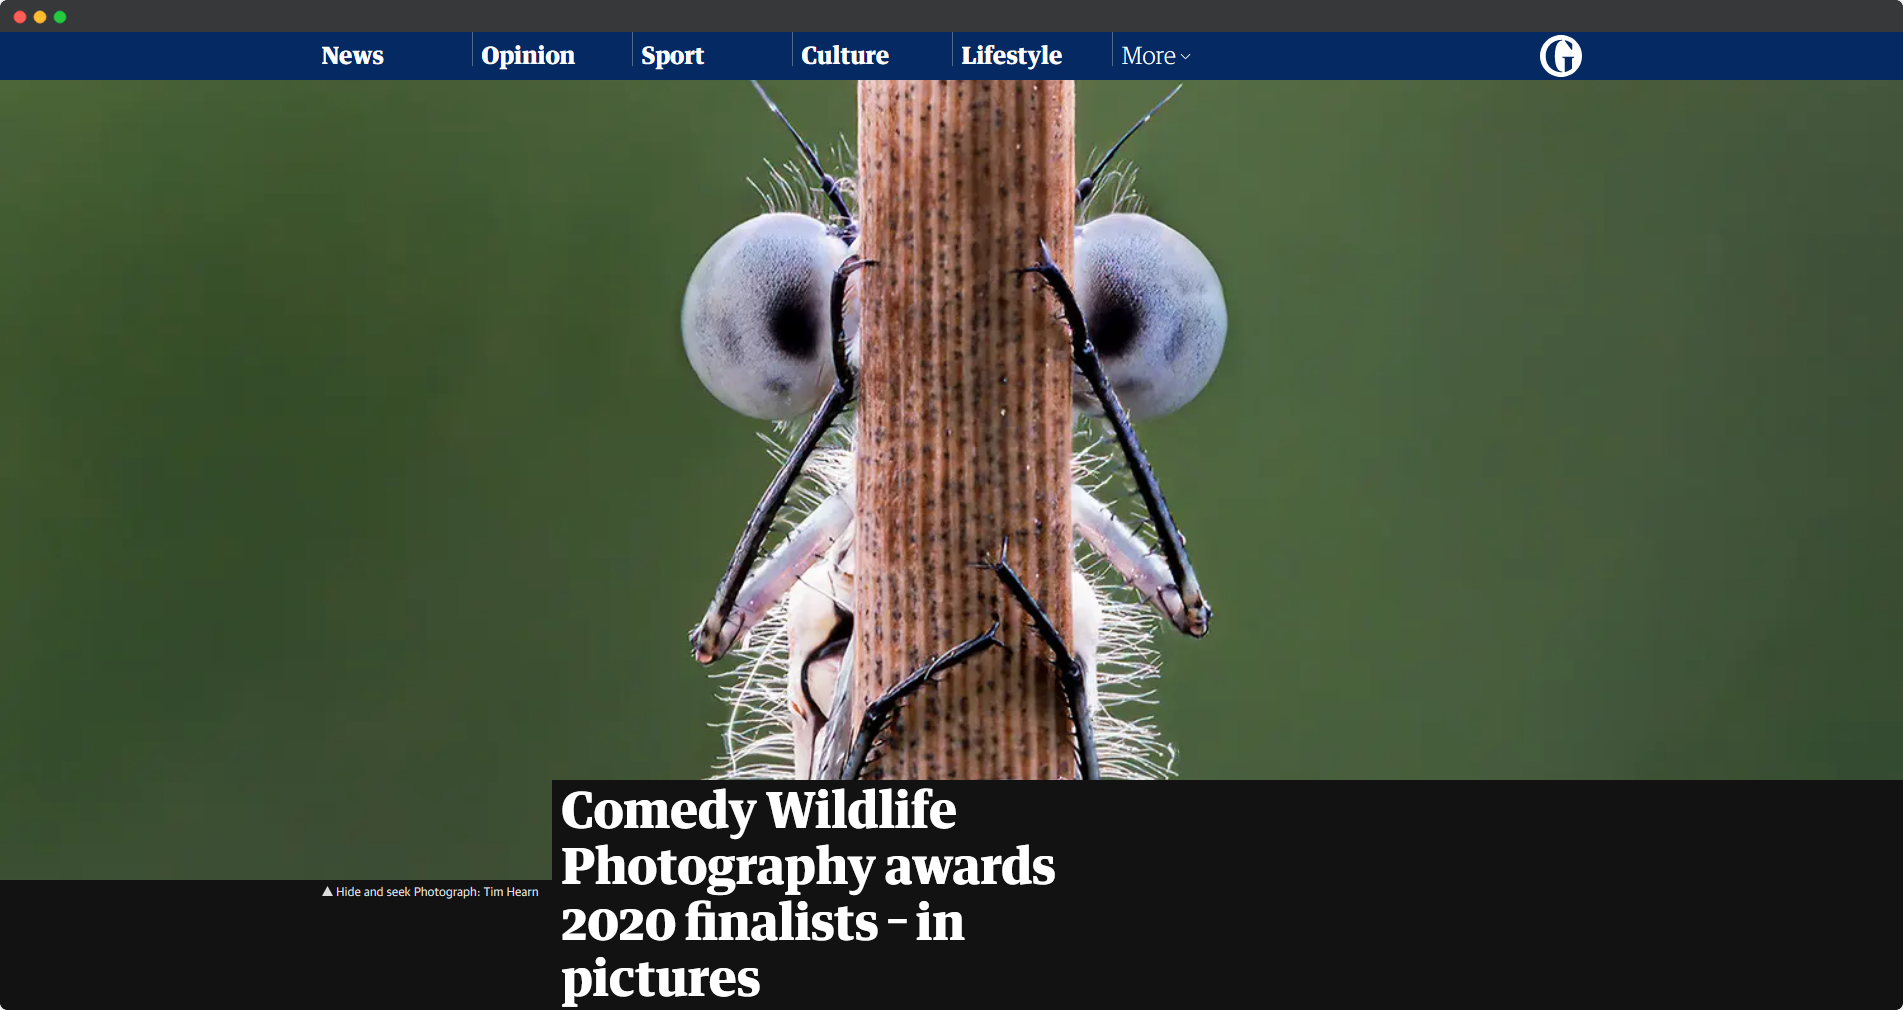 Comedy Wildlife Photography awards 2020 finalists